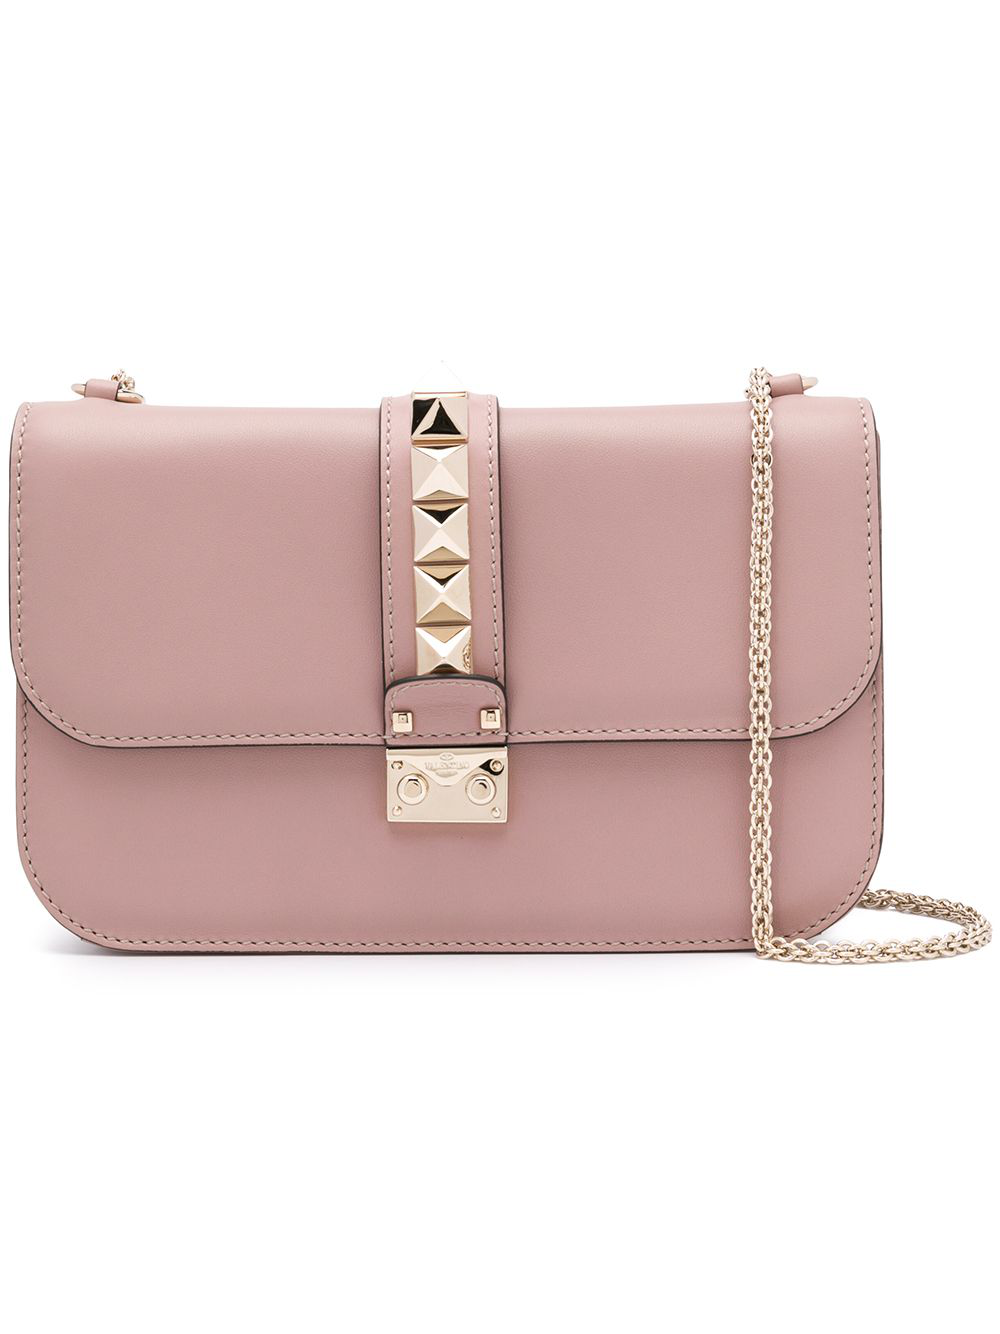 f235c6d2cb9 Valentino Glam Lock Shoulder Bag Medium - Farfetch In Neutrals ...